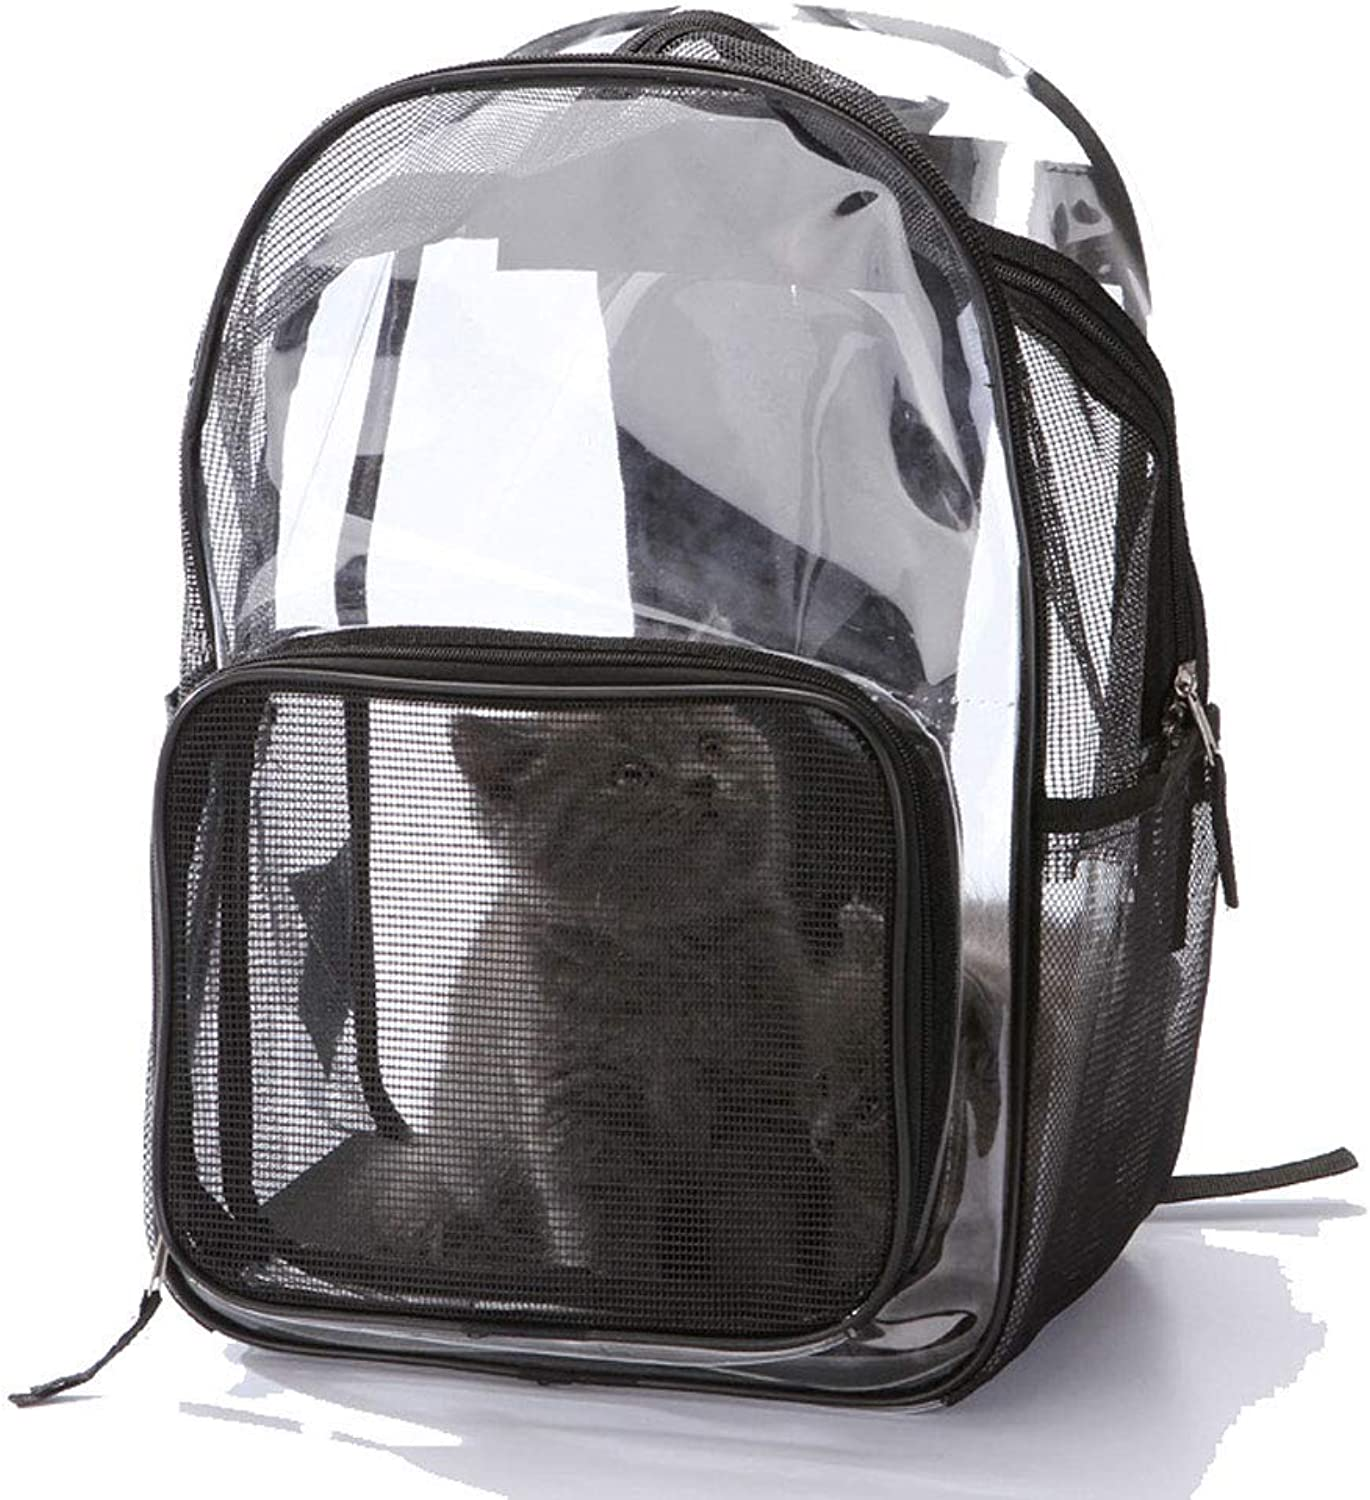 Pet Travel Carrier Pet Carrier Backpack Transparent Bag for Small Dogs, Cats, Puppies, Kittens, Pets Ourtdoor Pet Bag